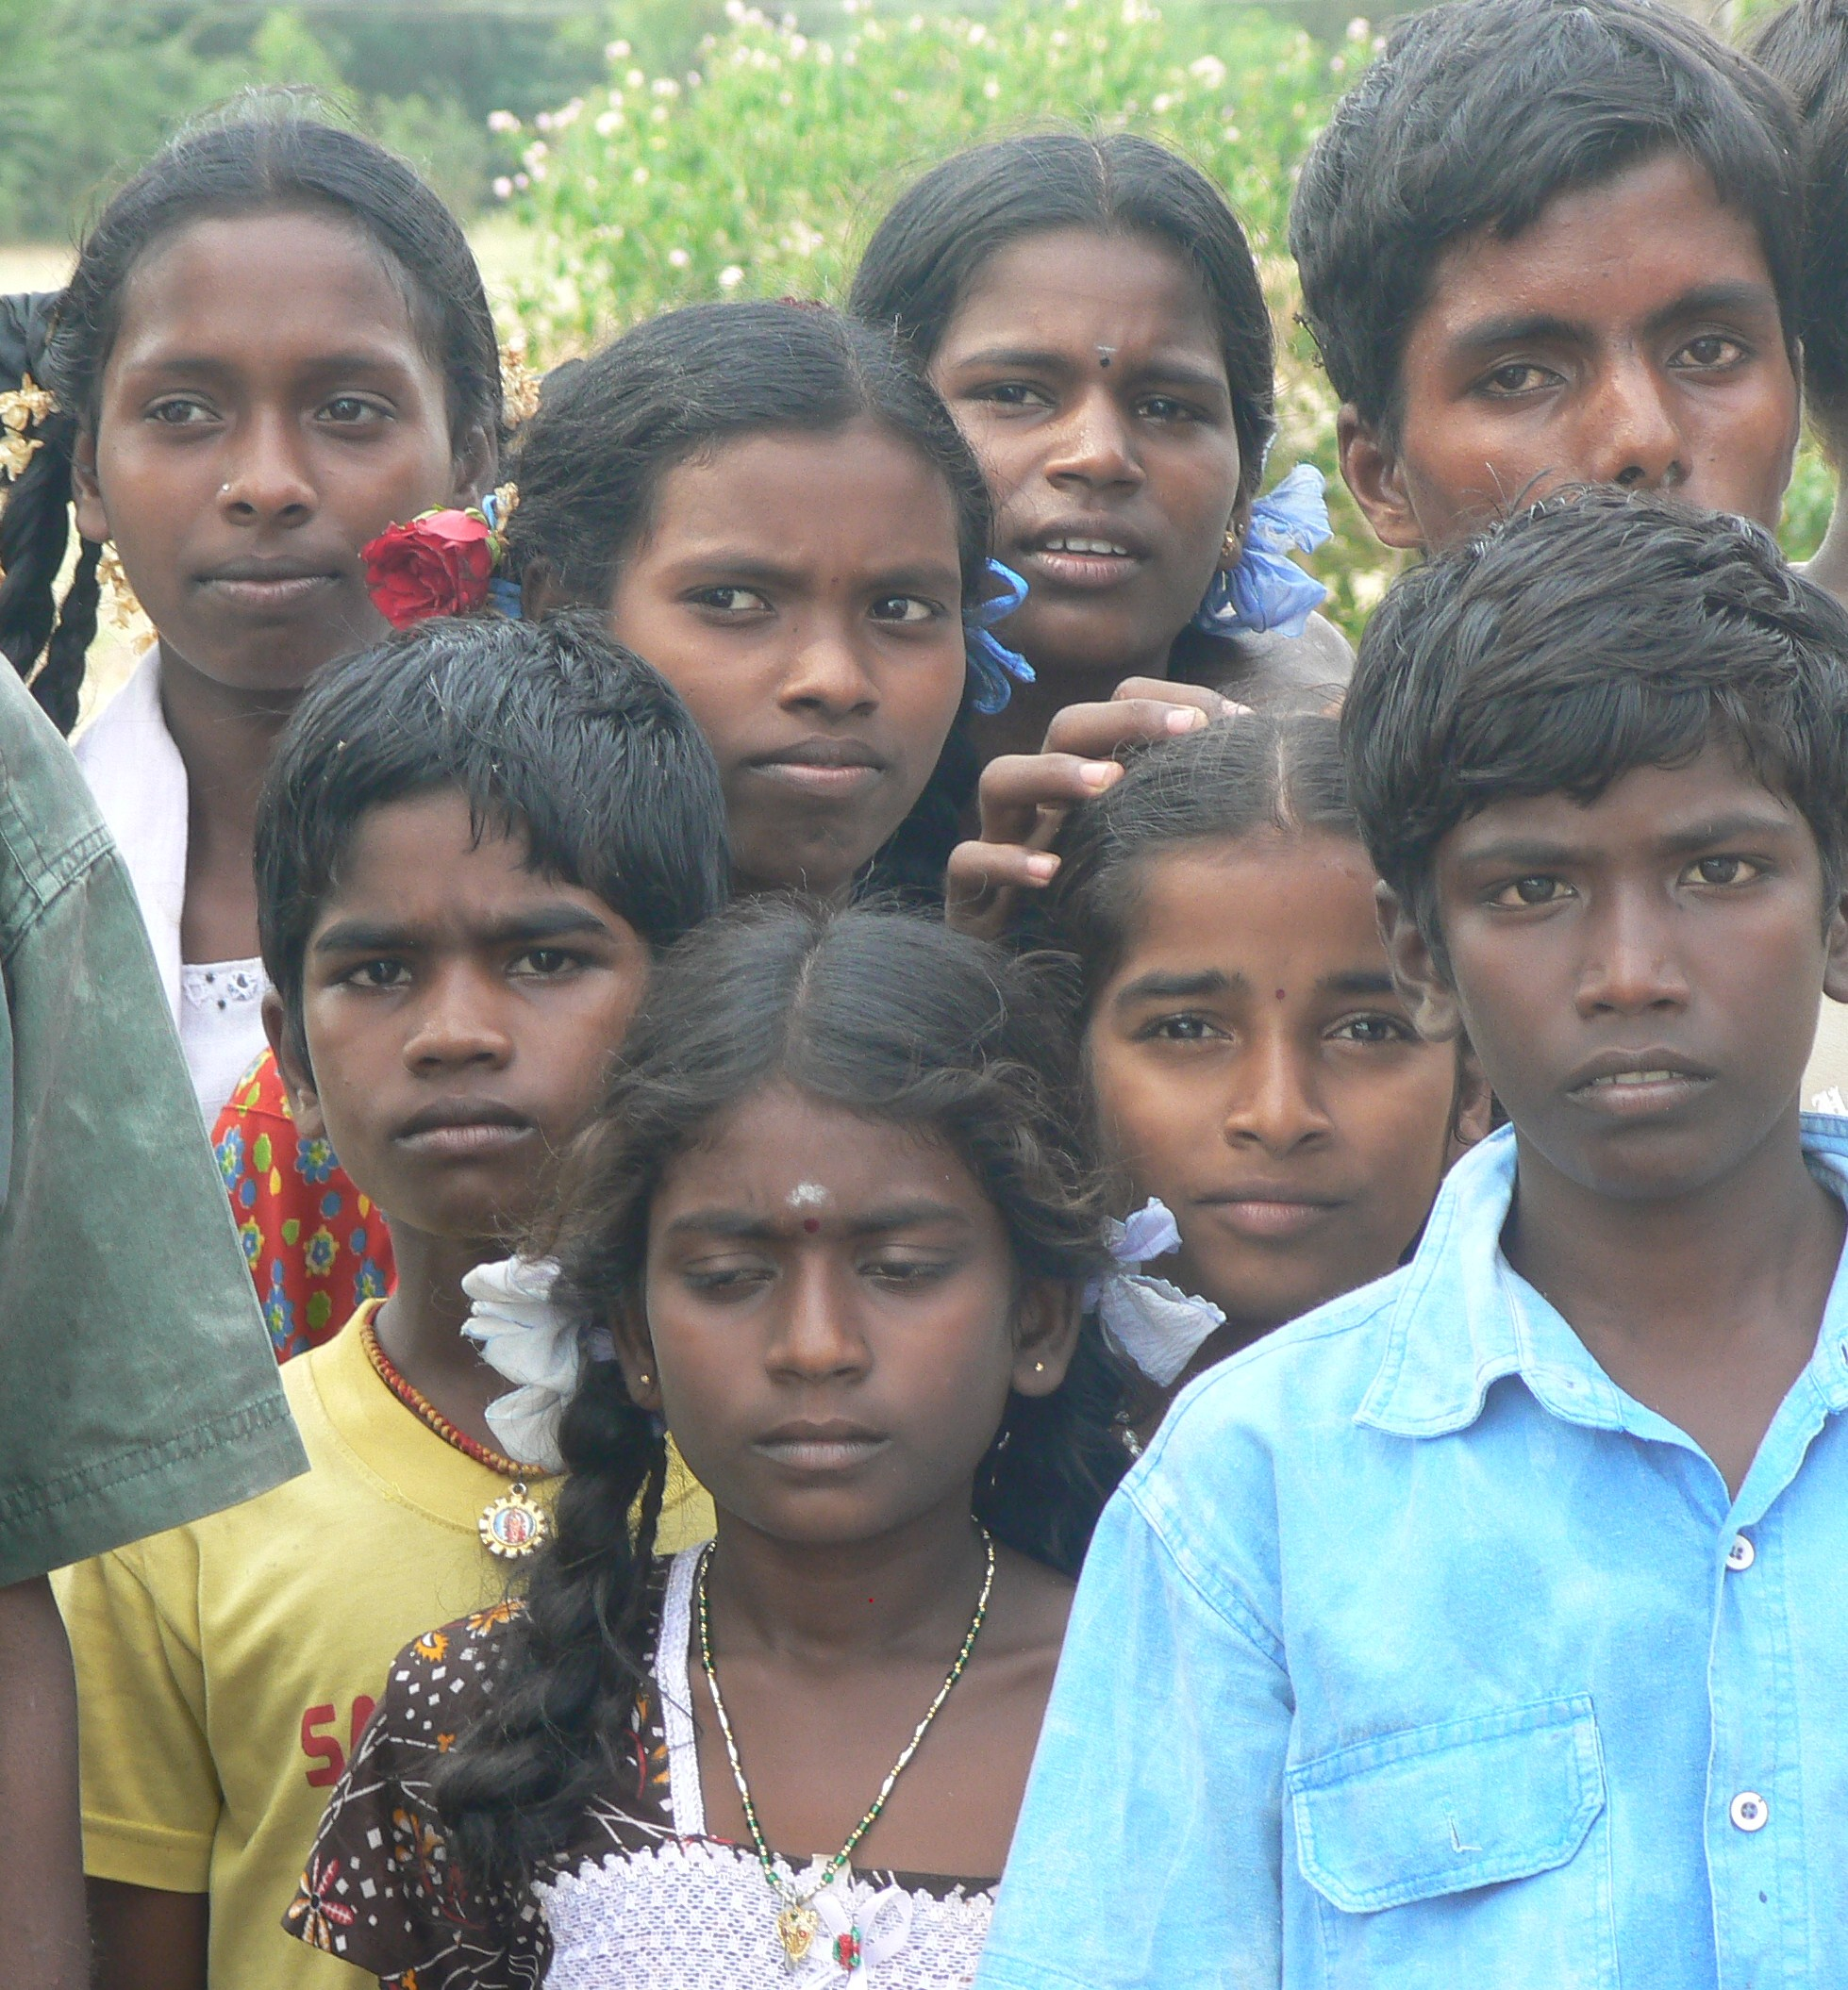 Rural Tamil children